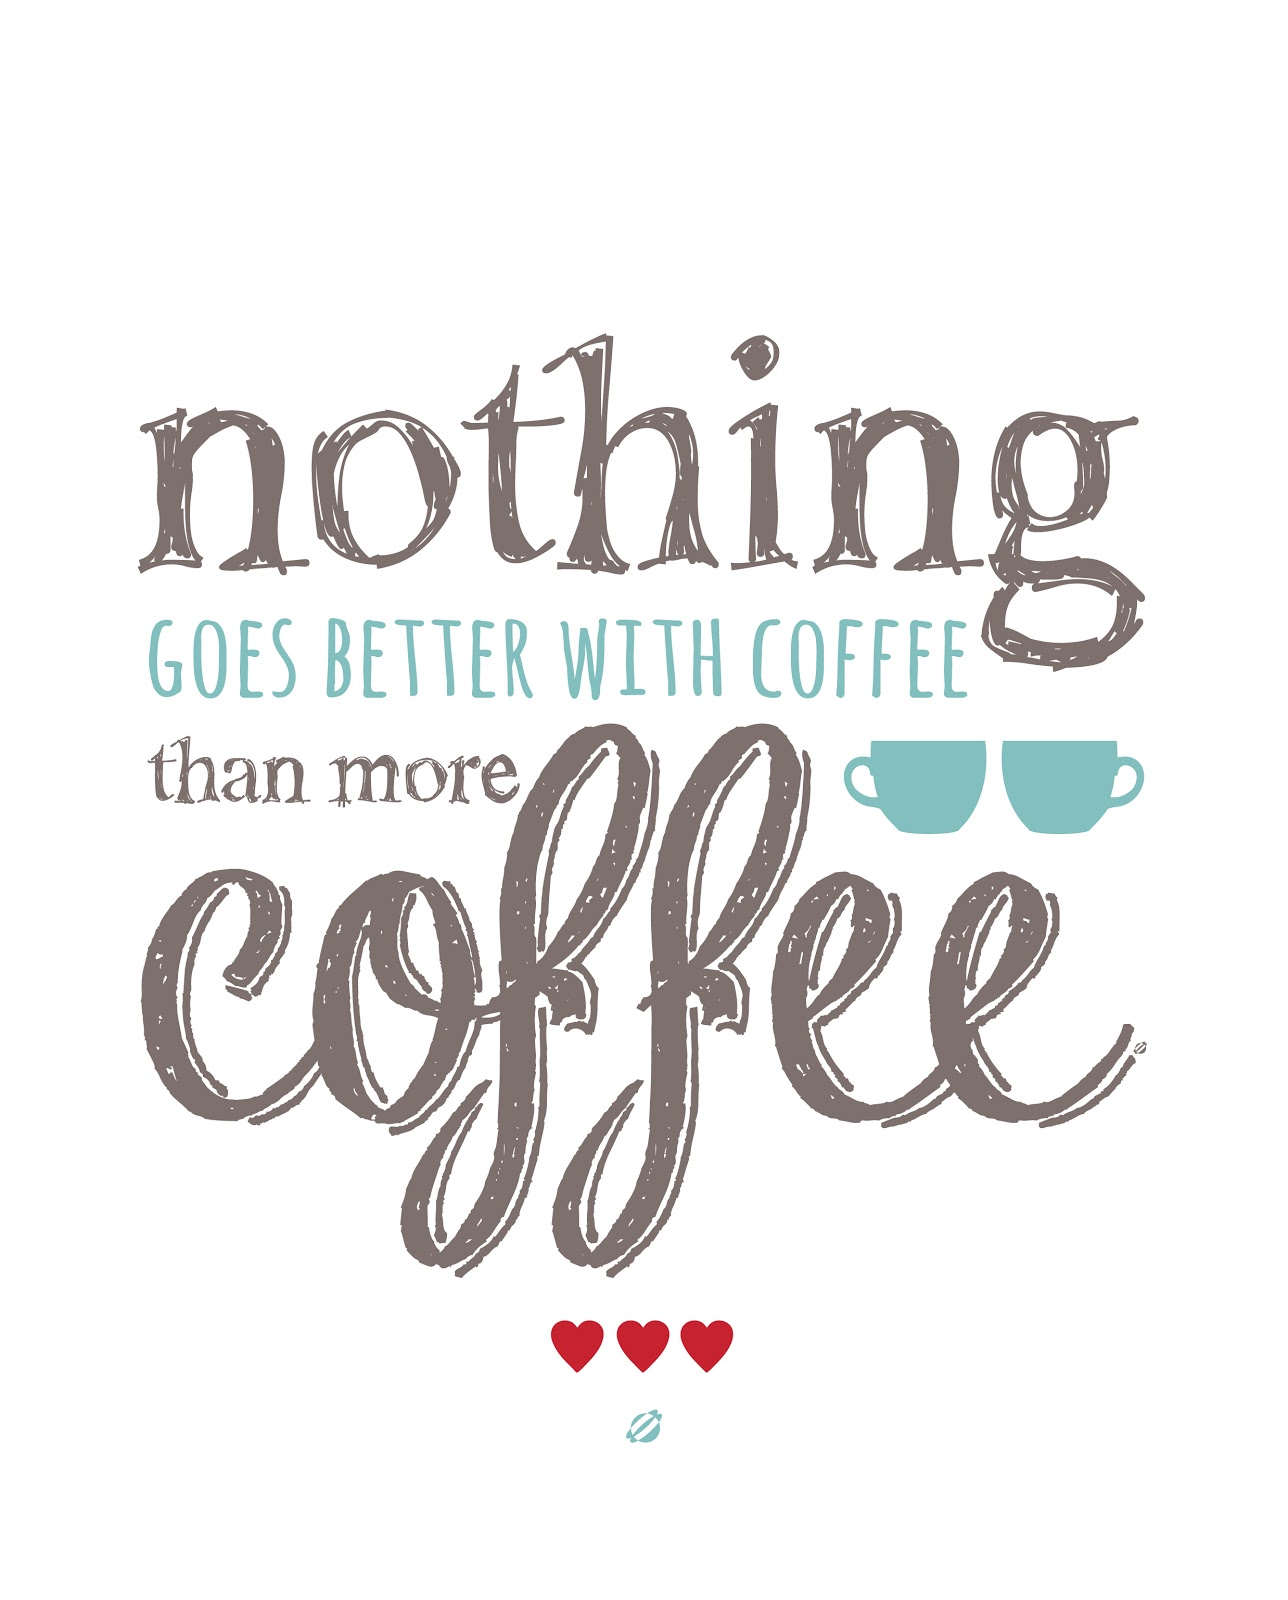 Free Printable Coffee Quotes: LostBumblebee: More Coffee